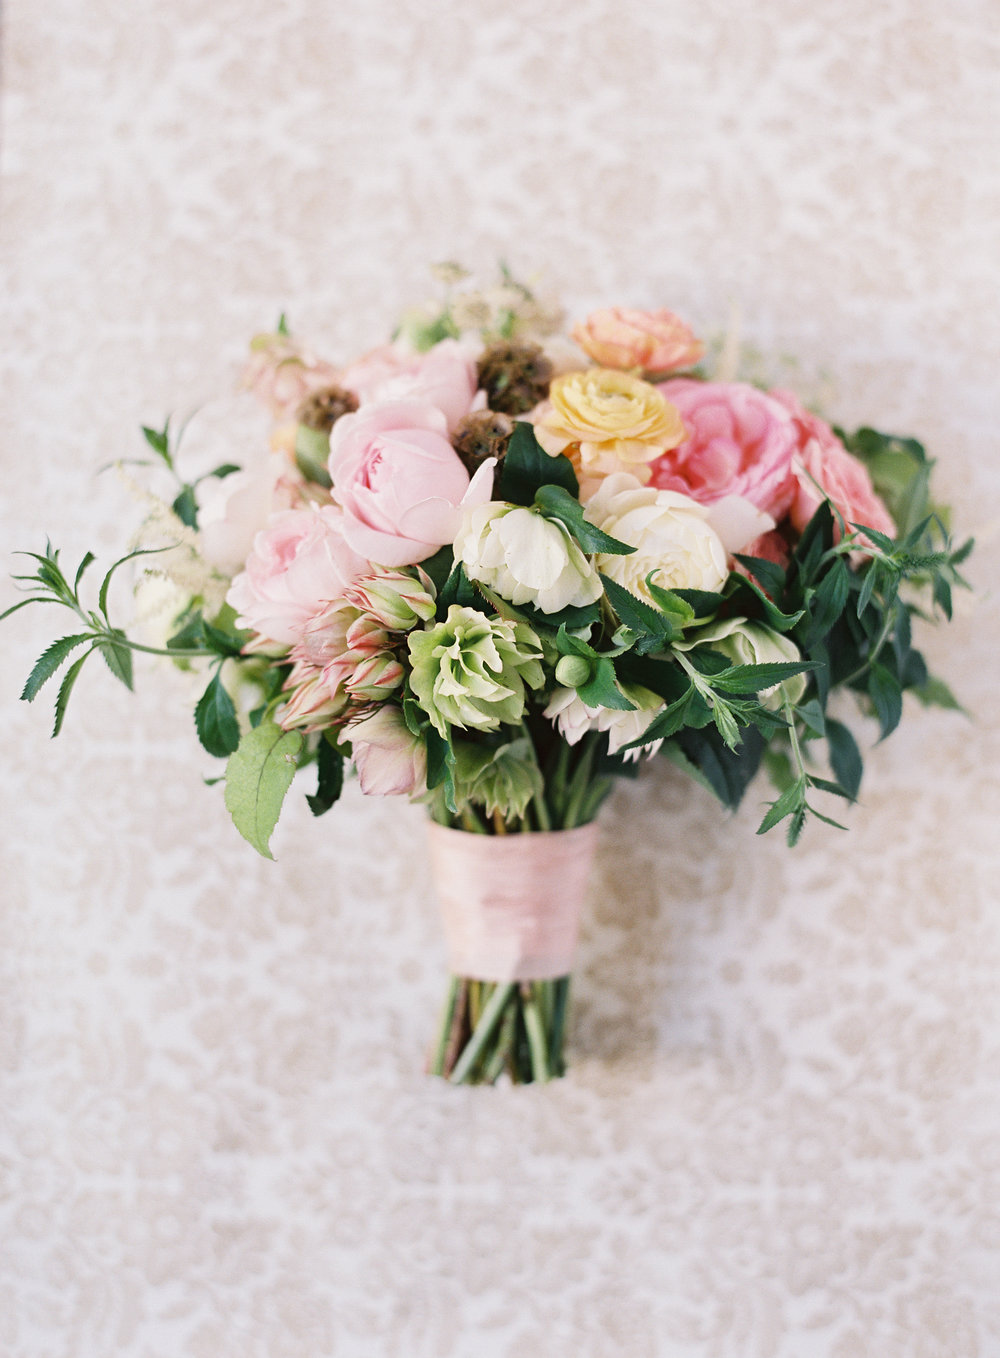 Photography -  Michelle Beller Photography   Green/White Hellebores - Spring/Winter  Blushing Bride Protea - Summer  Brown Scabiosa Pods - Spring/Summer  Pink Heritage Garden Rose - Spring/Summer/Fall  Peach Ranunculus - Spring